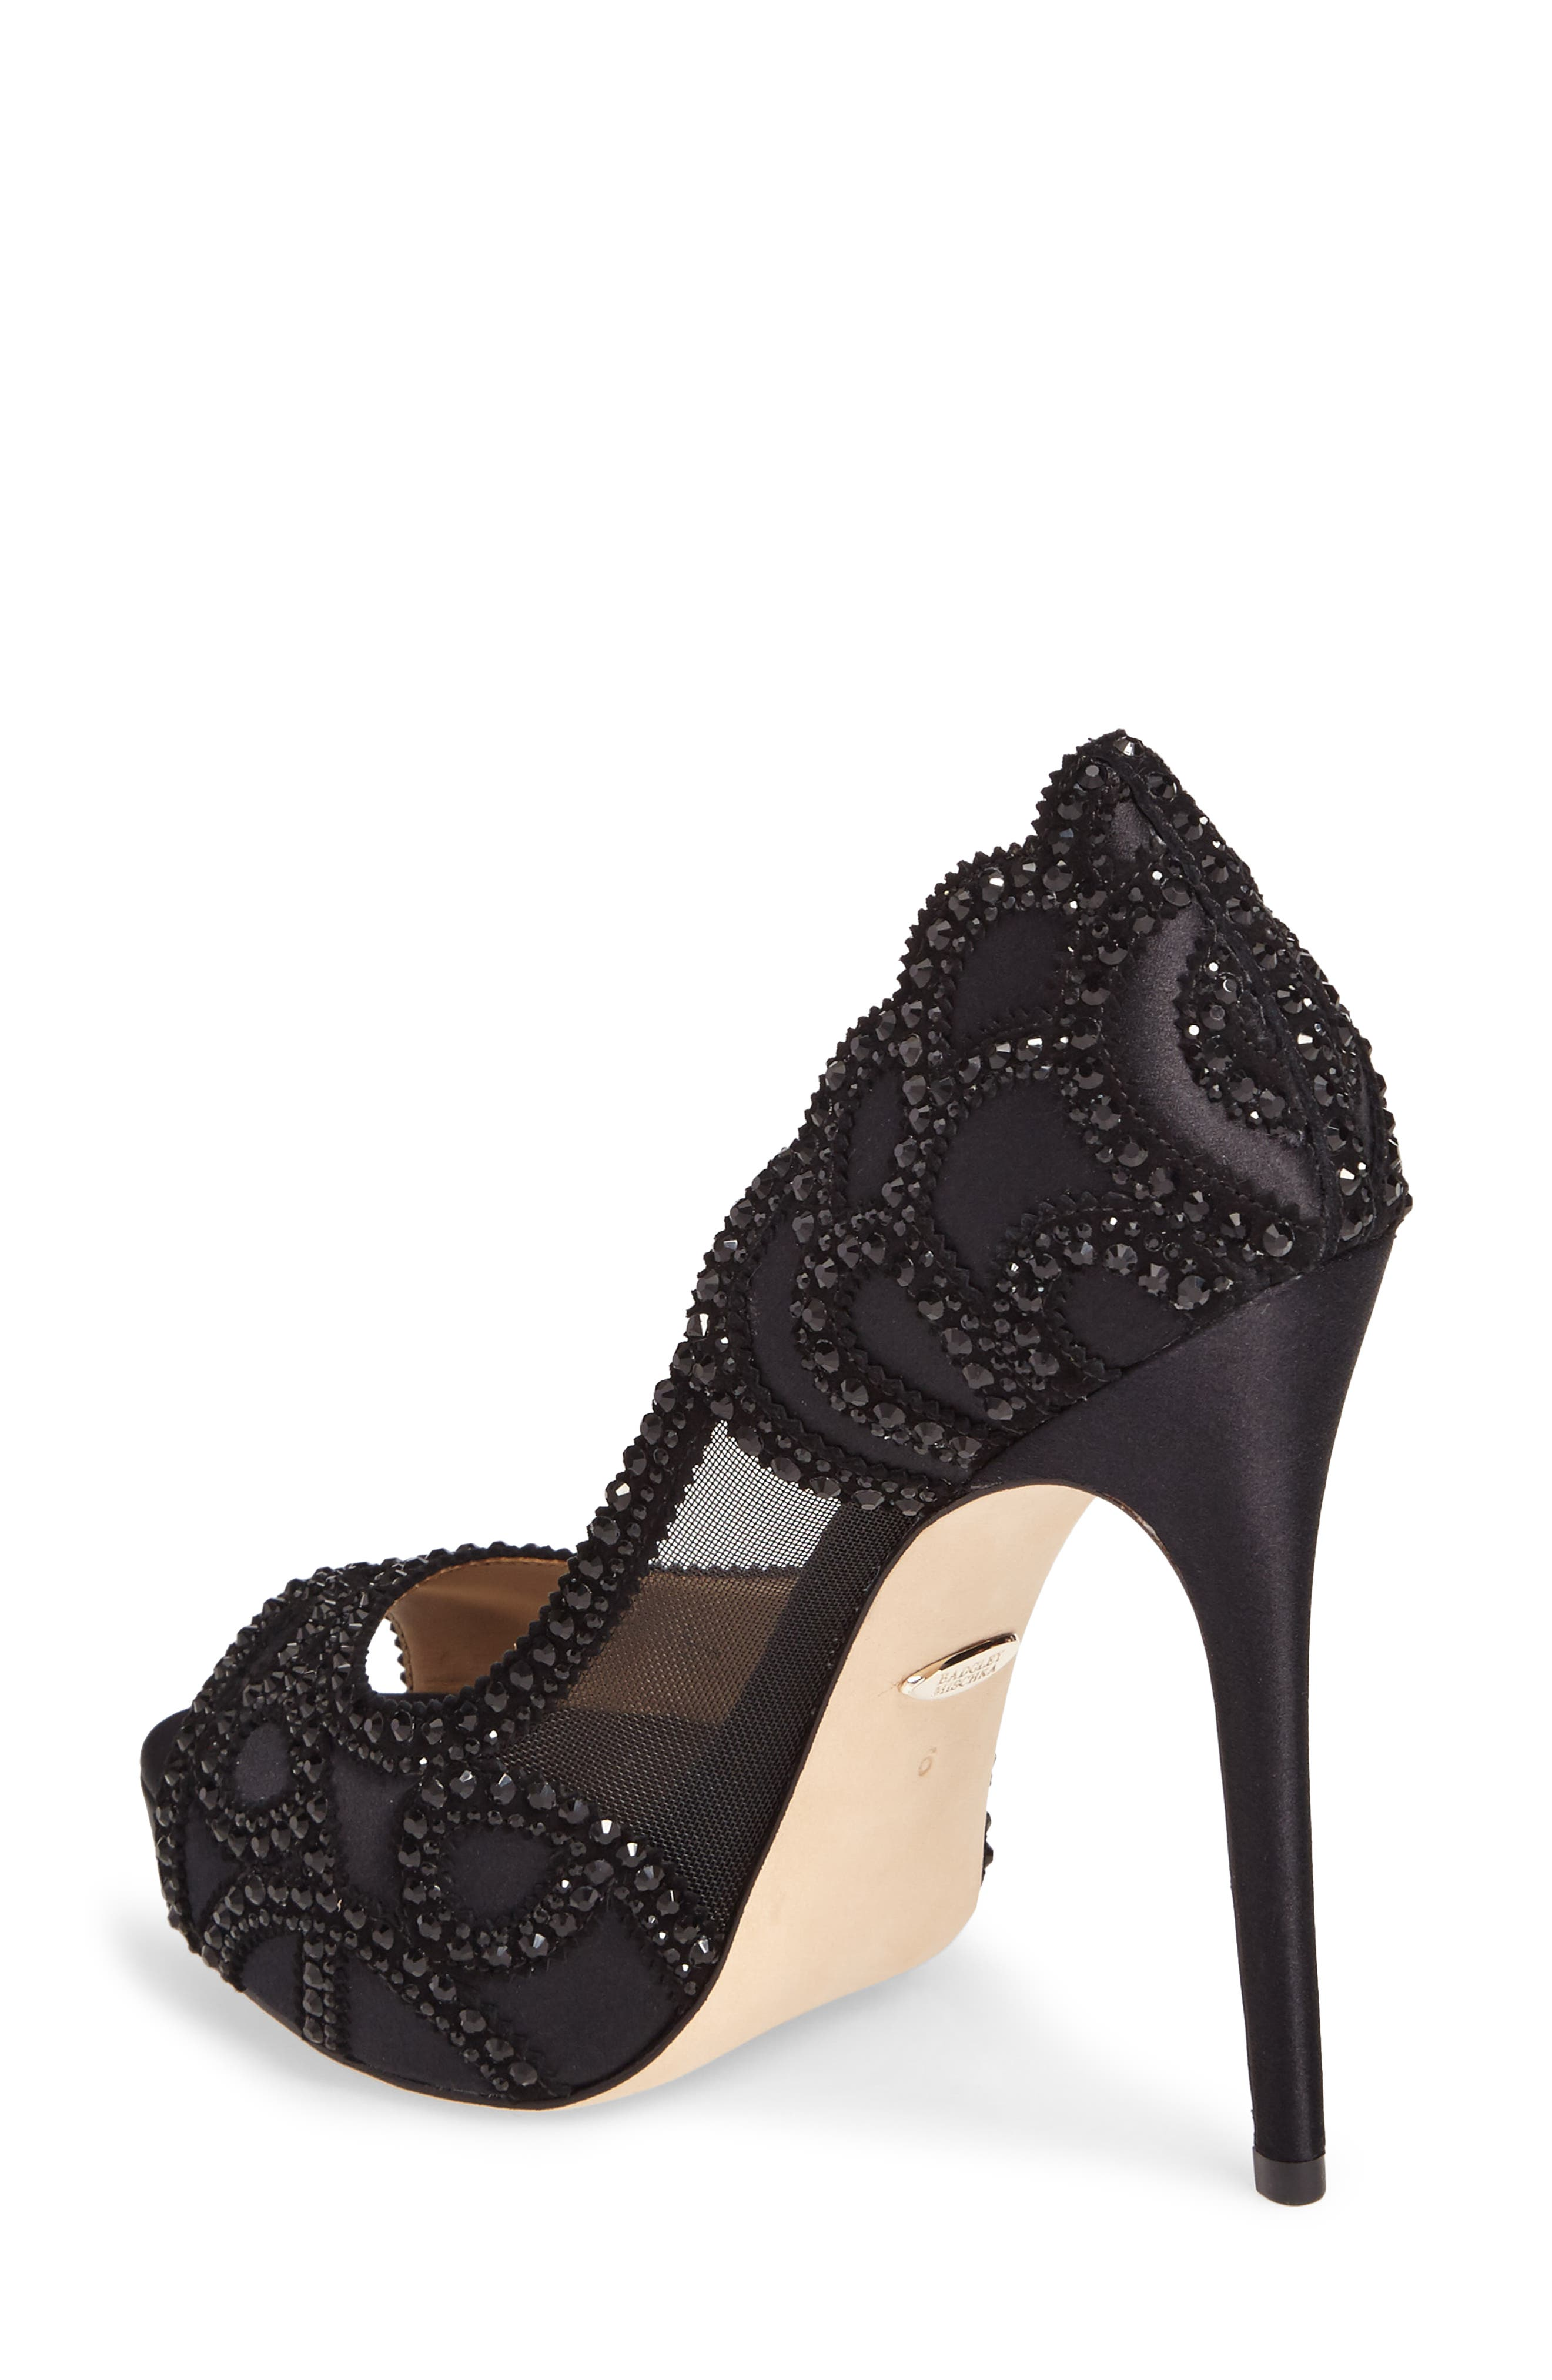 Witney Embellished Peep Toe Pump,                             Alternate thumbnail 2, color,                             Black Satin